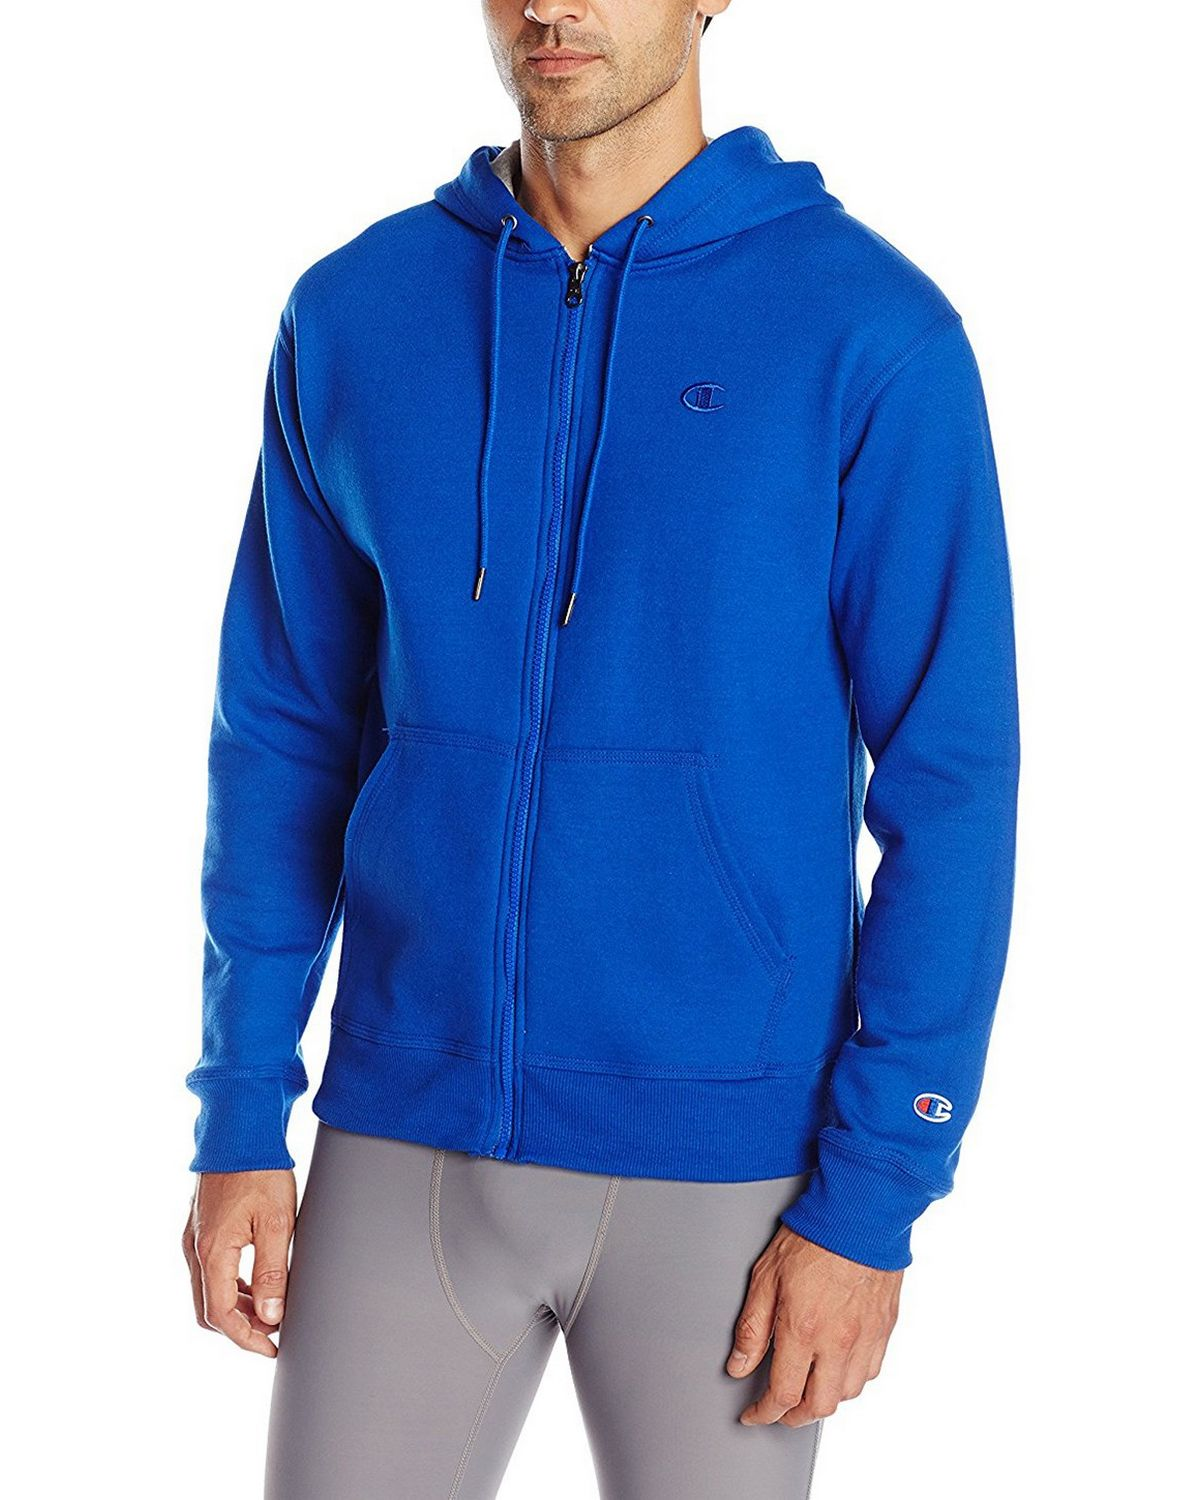 Champion S0891 Mens Fleece Full Zip Jacket - Surf The Web - S S0891